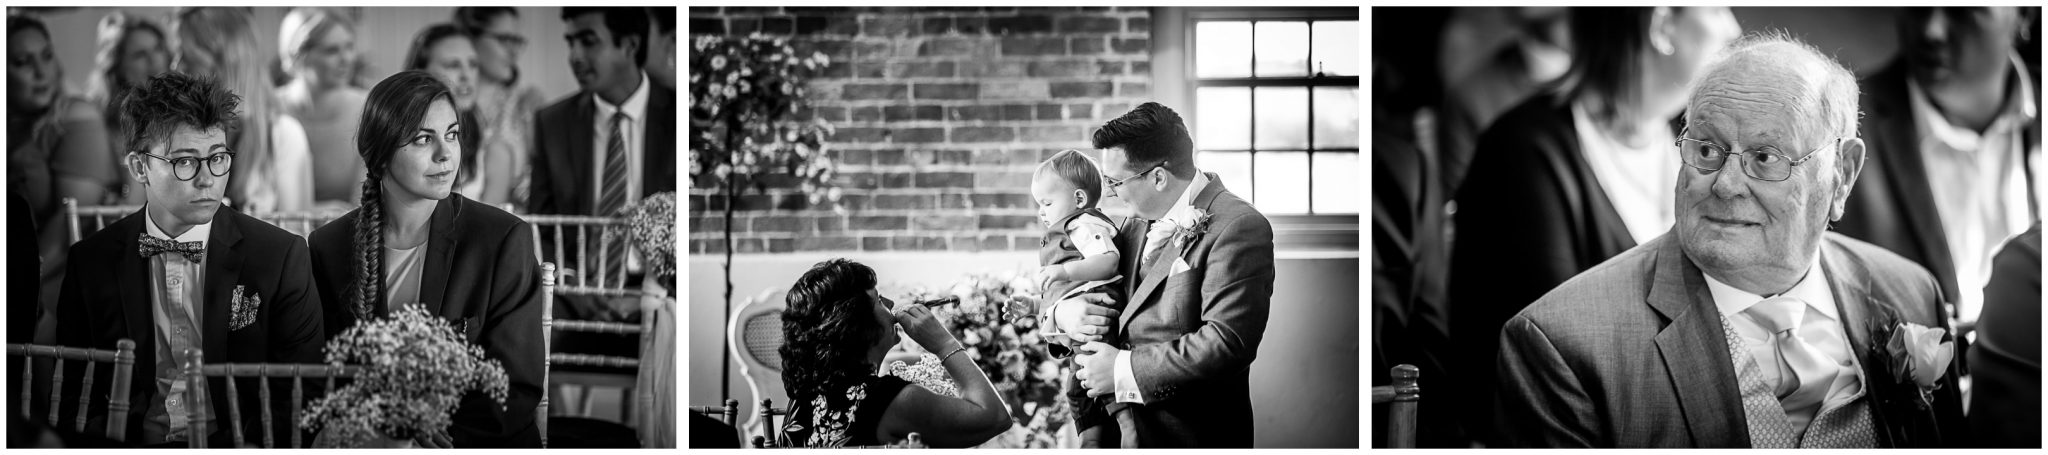 Sopley Mill wedding photography black and white candids of guests taking seats in ceremony room